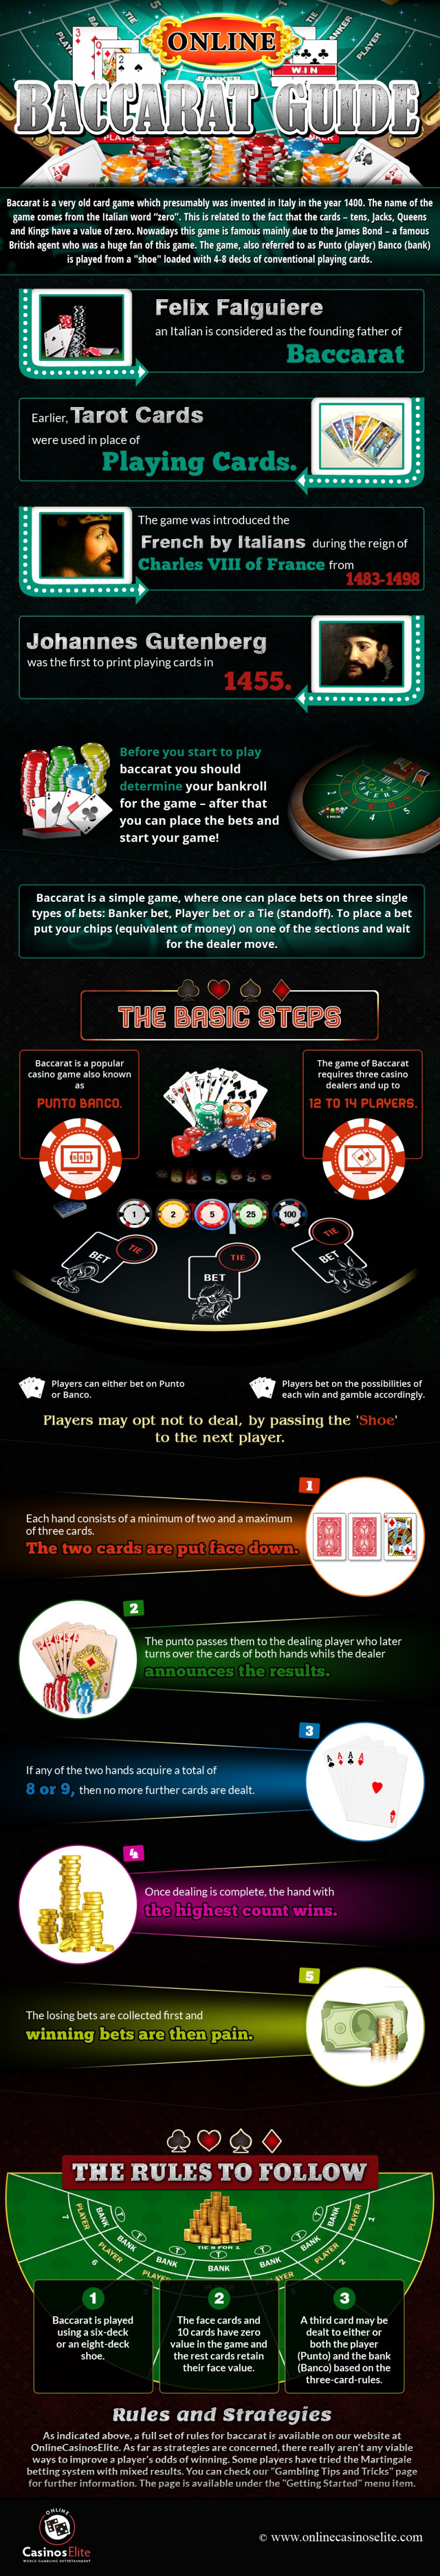 221539? w=800 - 2 Must-Play Arcade Variations of Online Baccarat